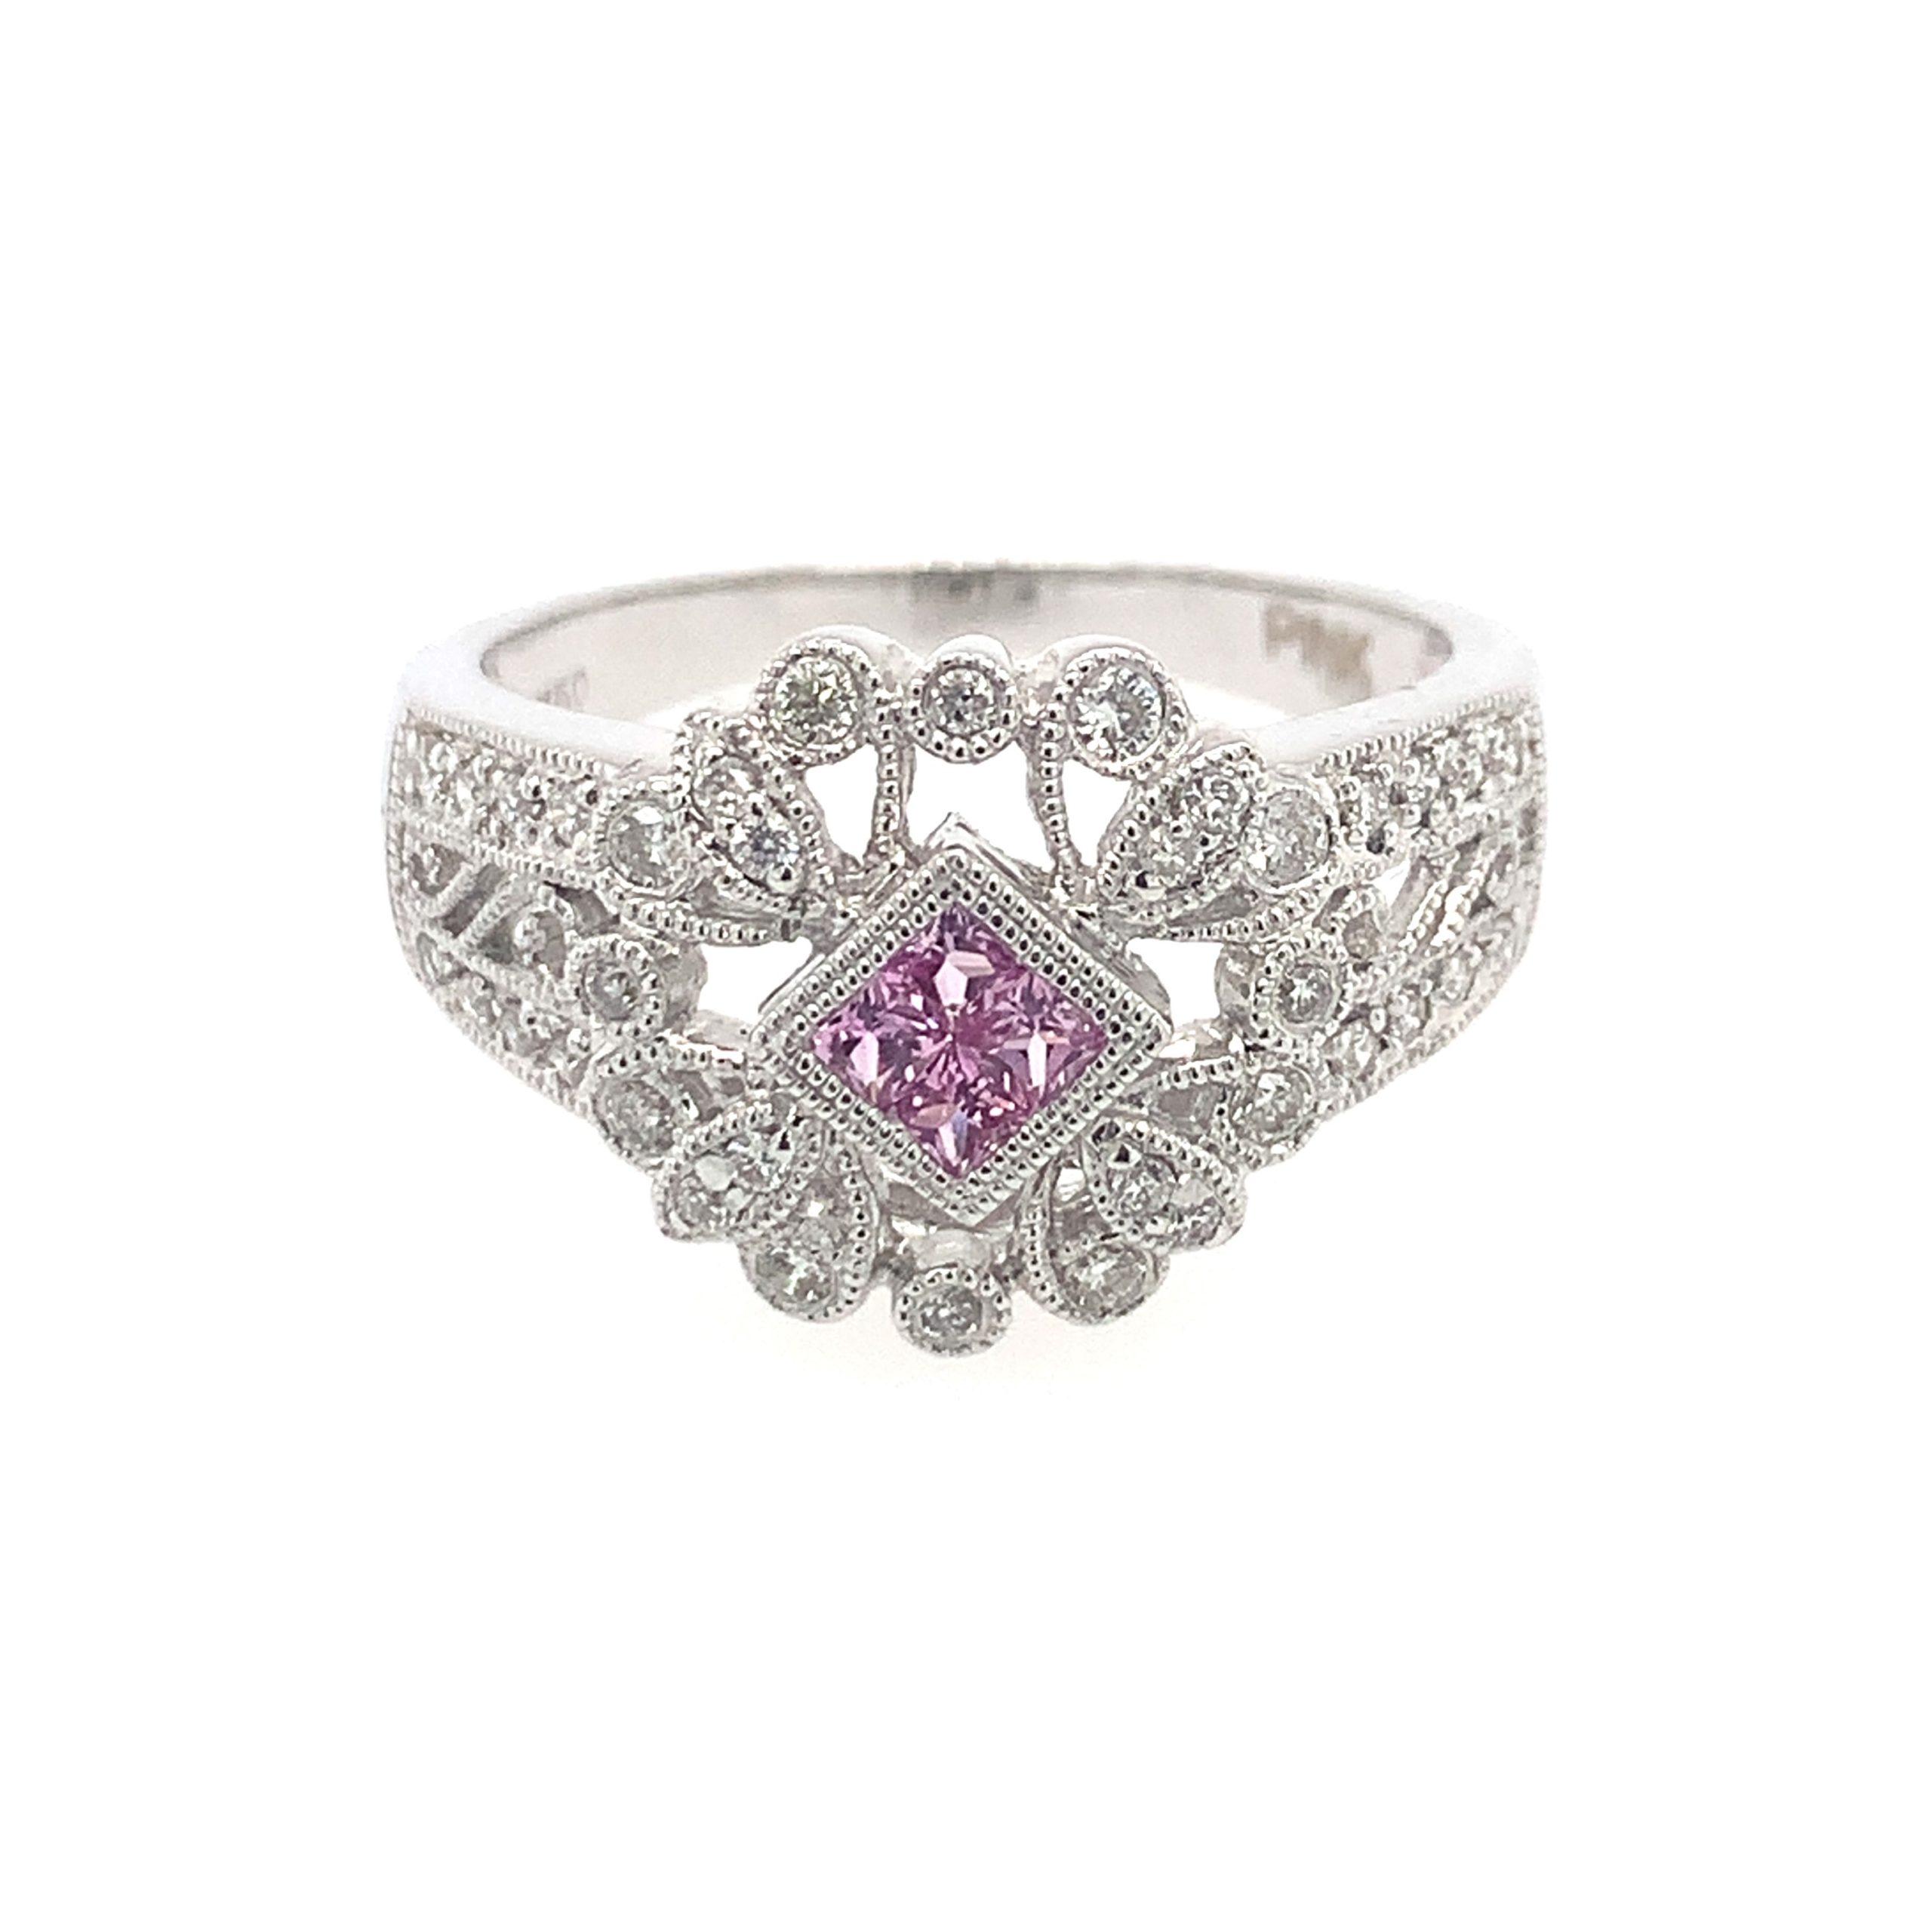 White Gold Antique-Inspired Pink Sapphire Ring